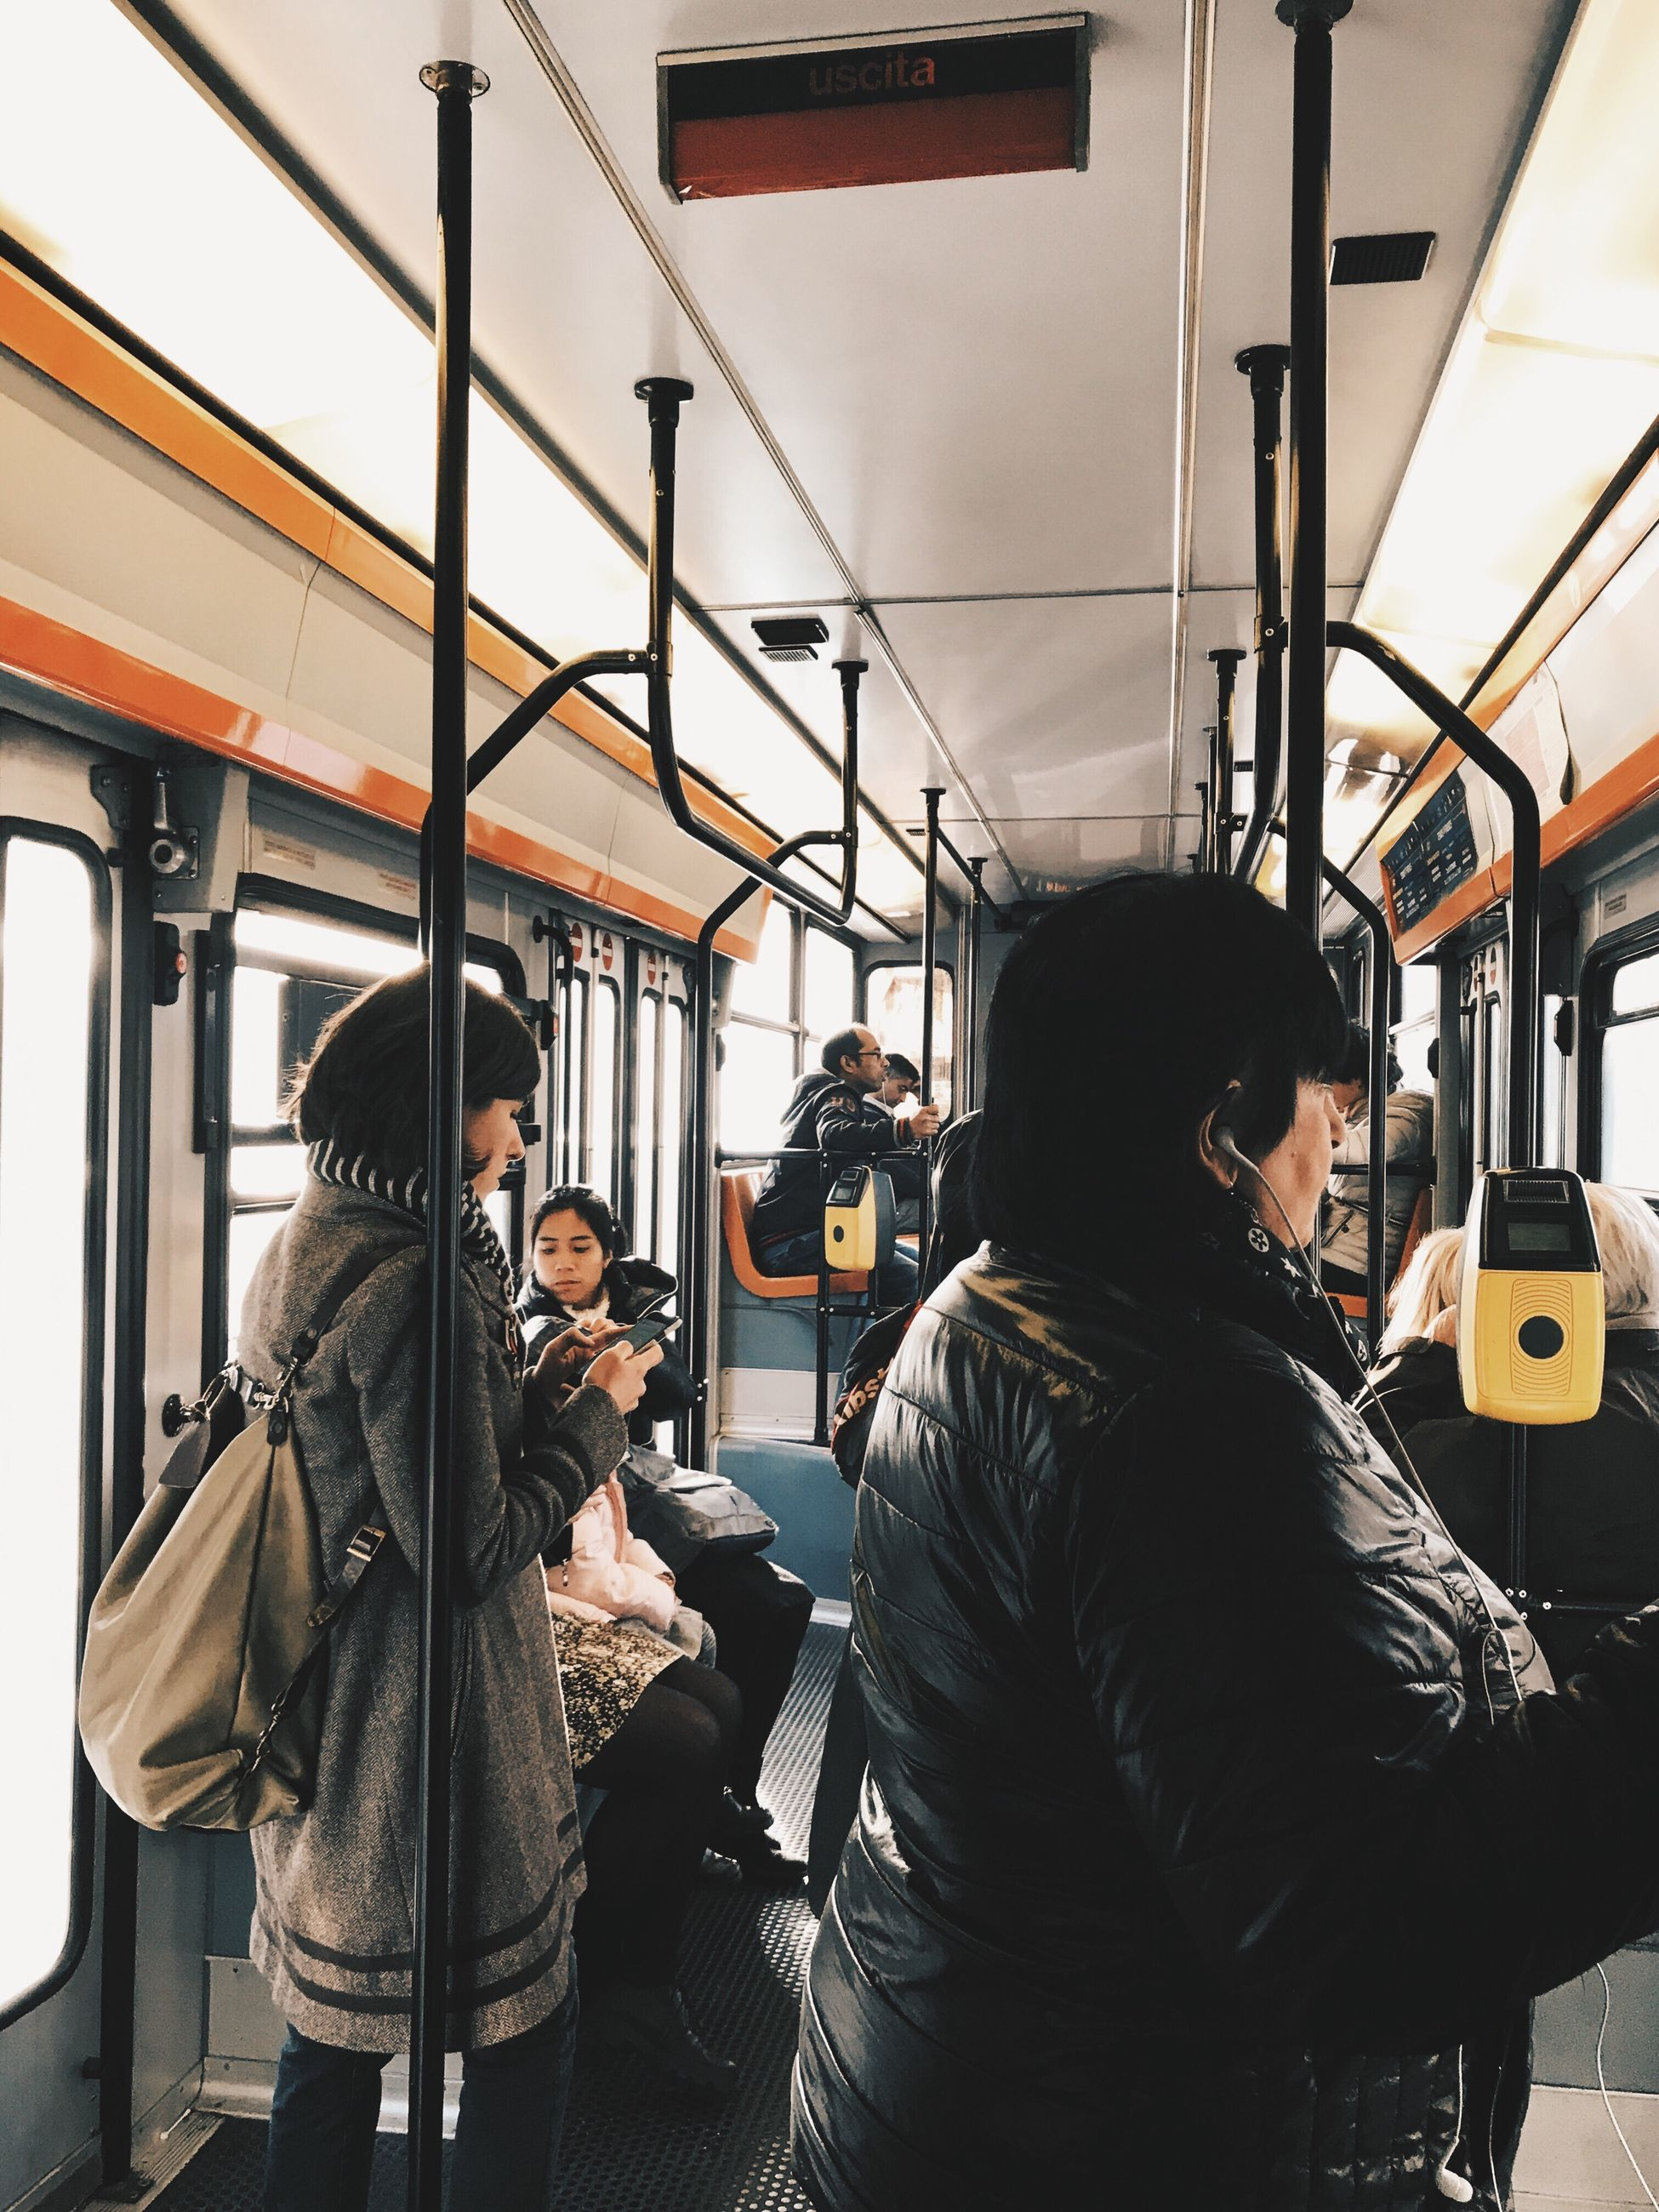 public transportation, transportation, train - vehicle, vehicle interior, journey, passenger, subway train, travel, mode of transport, commuter, rail transportation, real people, passenger train, metro train, commuter train, train interior, vehicle seat, casual clothing, black hair, city life, standing, lifestyles, young adult, bus, women, men, sitting, railroad station platform, young women, indoors, city, technology, day, one person, adult, people